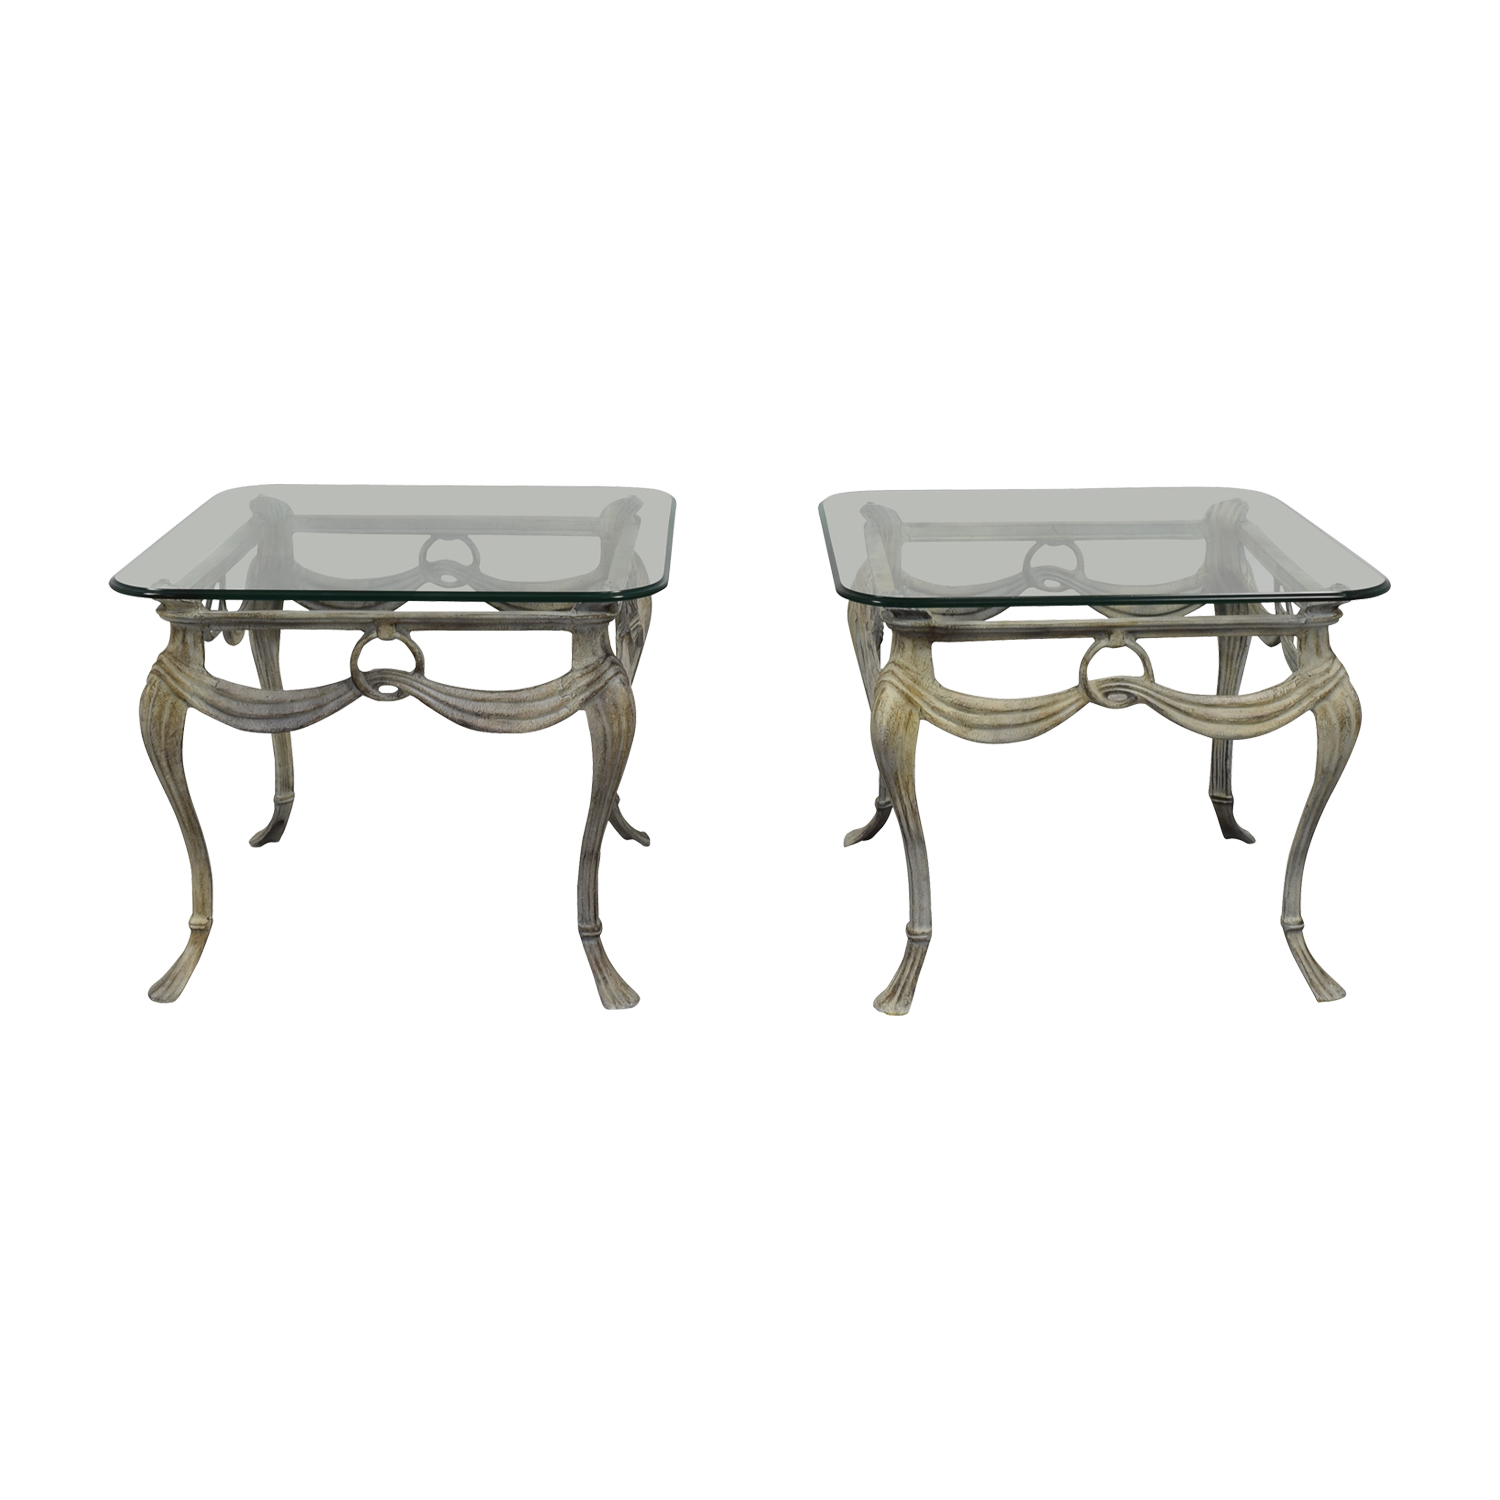 Antique Glass and Metal End Tables dimensions